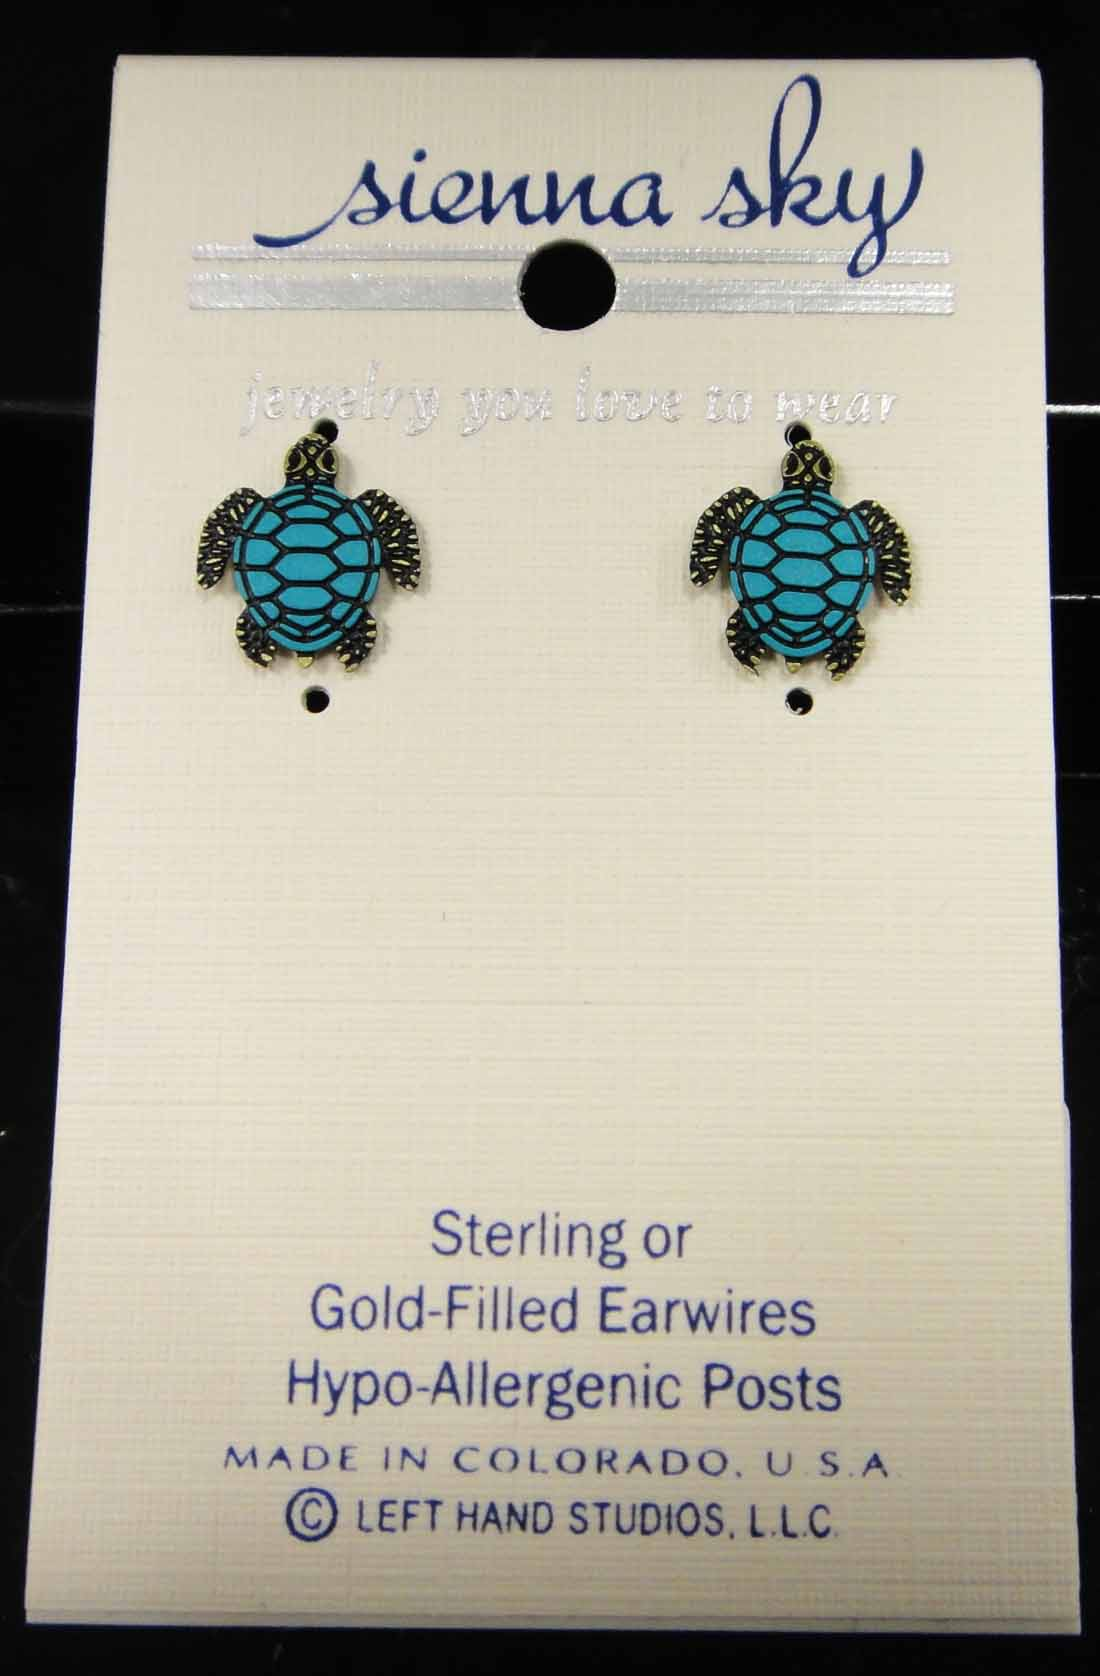 These blue and green sea turtle post earrings are made by Sienna Sky.